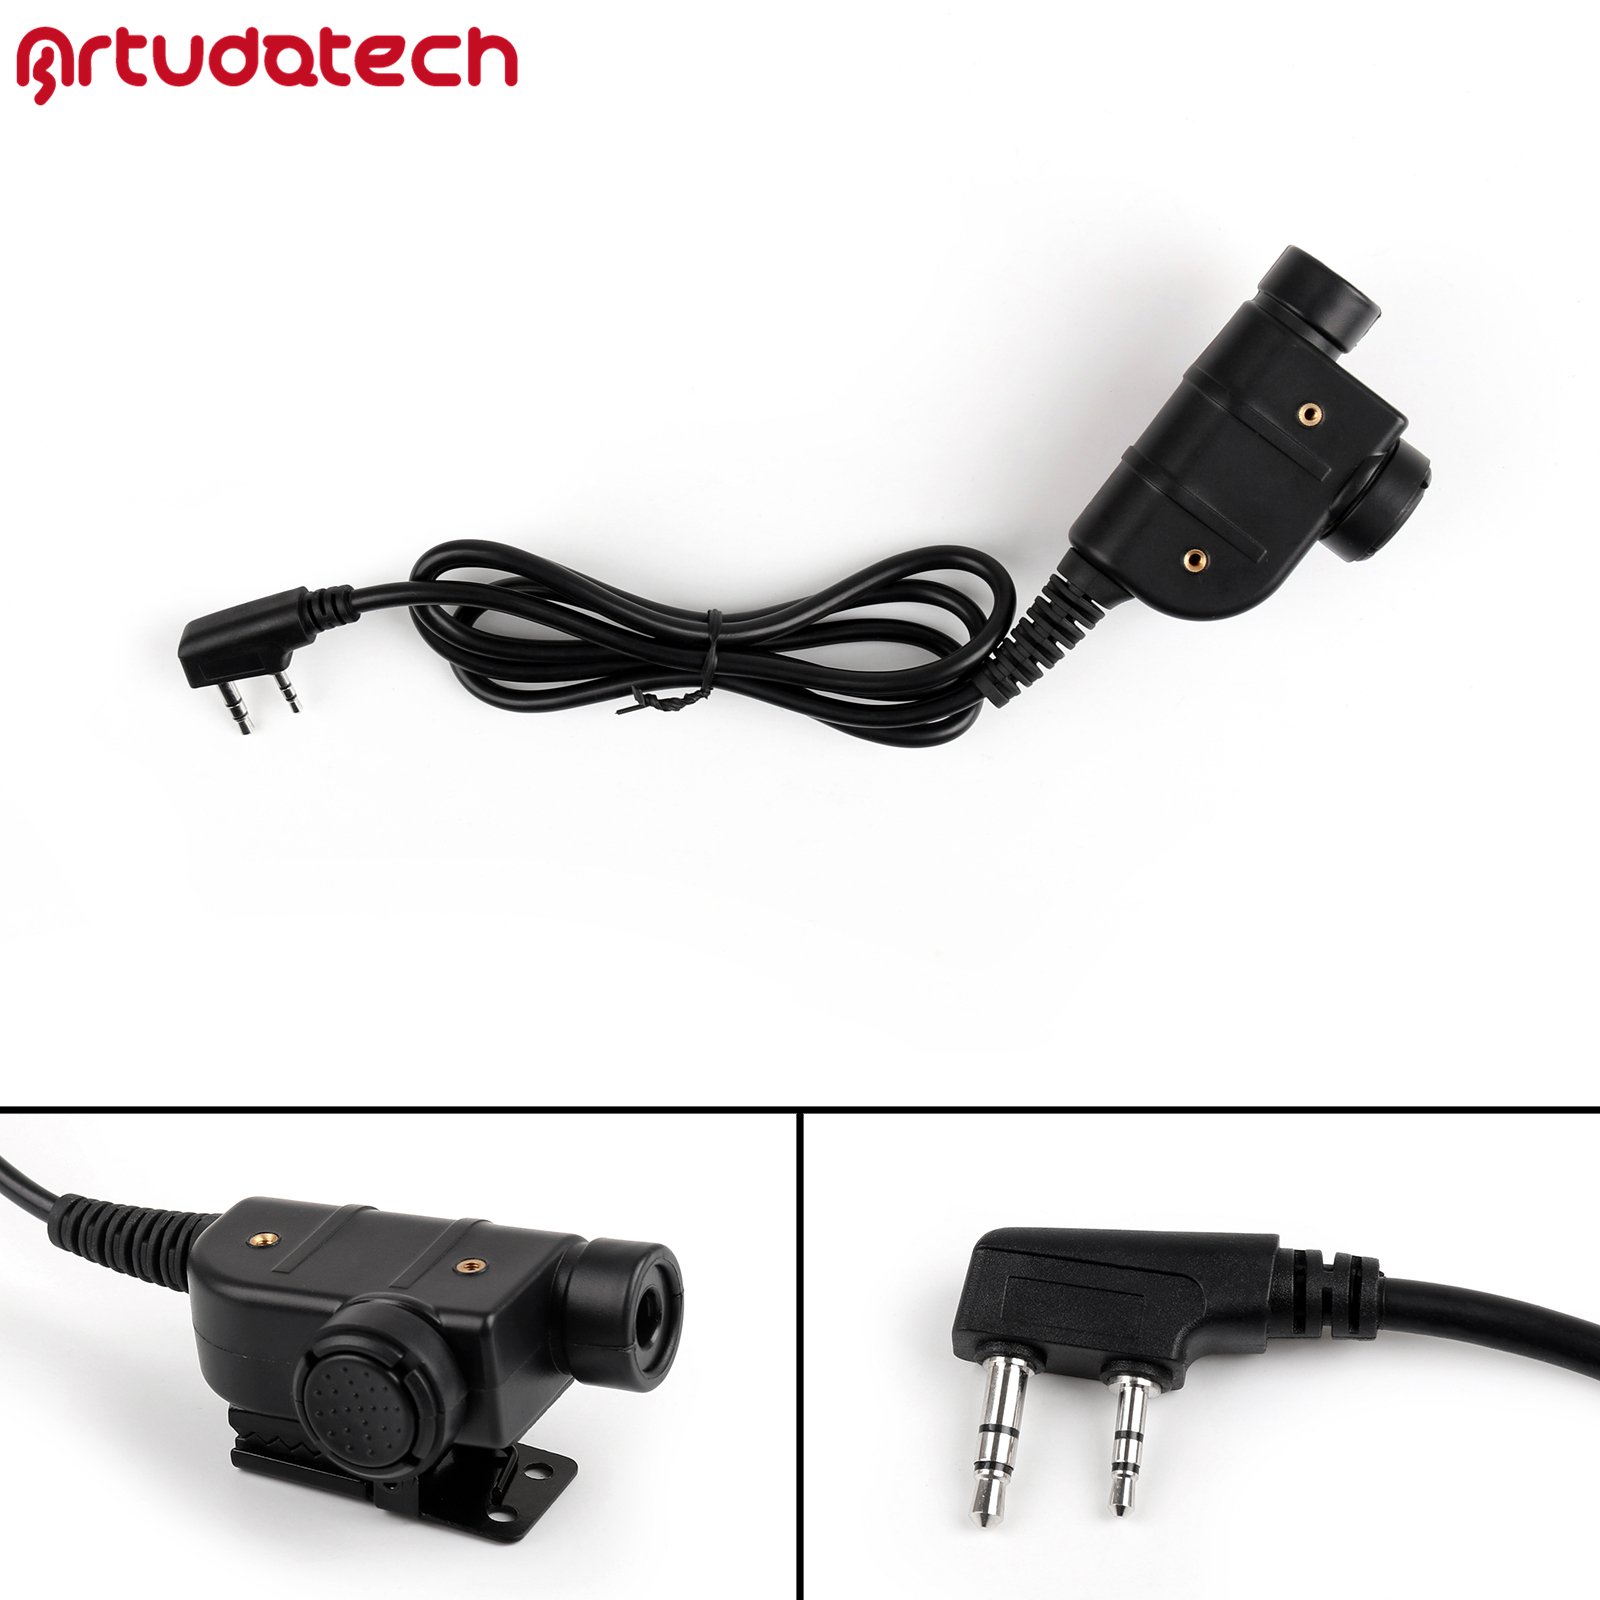 Artudatech Z-TAC Z125 Silynx Releases Chest U94 PTT For Kenwood Communication Headset For IASUS UHF Transceiver Pro Radio